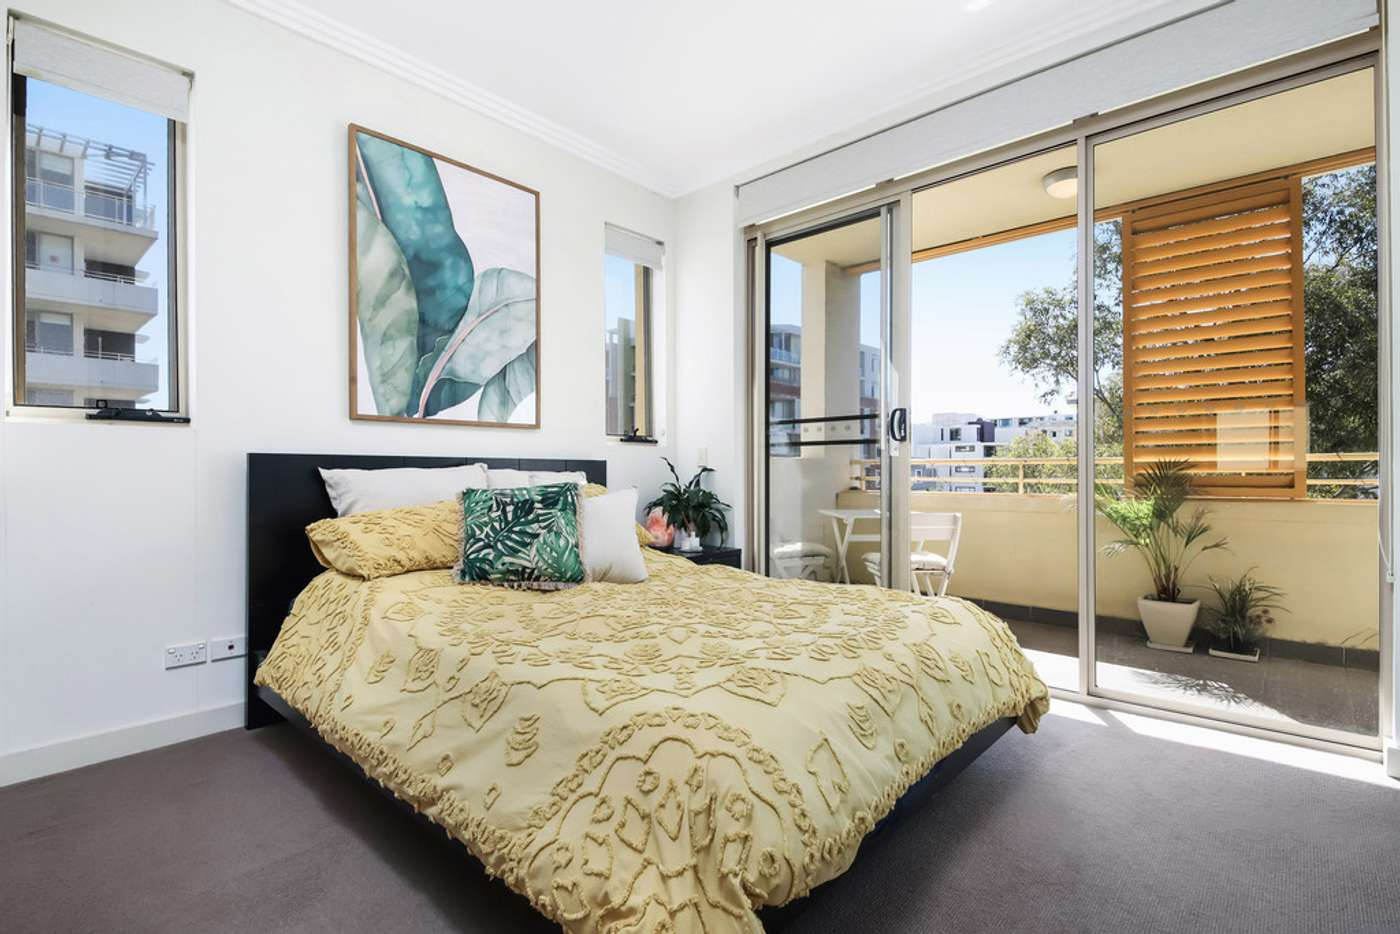 Fifth view of Homely apartment listing, 307/4 Stromboli Strait, Wentworth Point NSW 2127